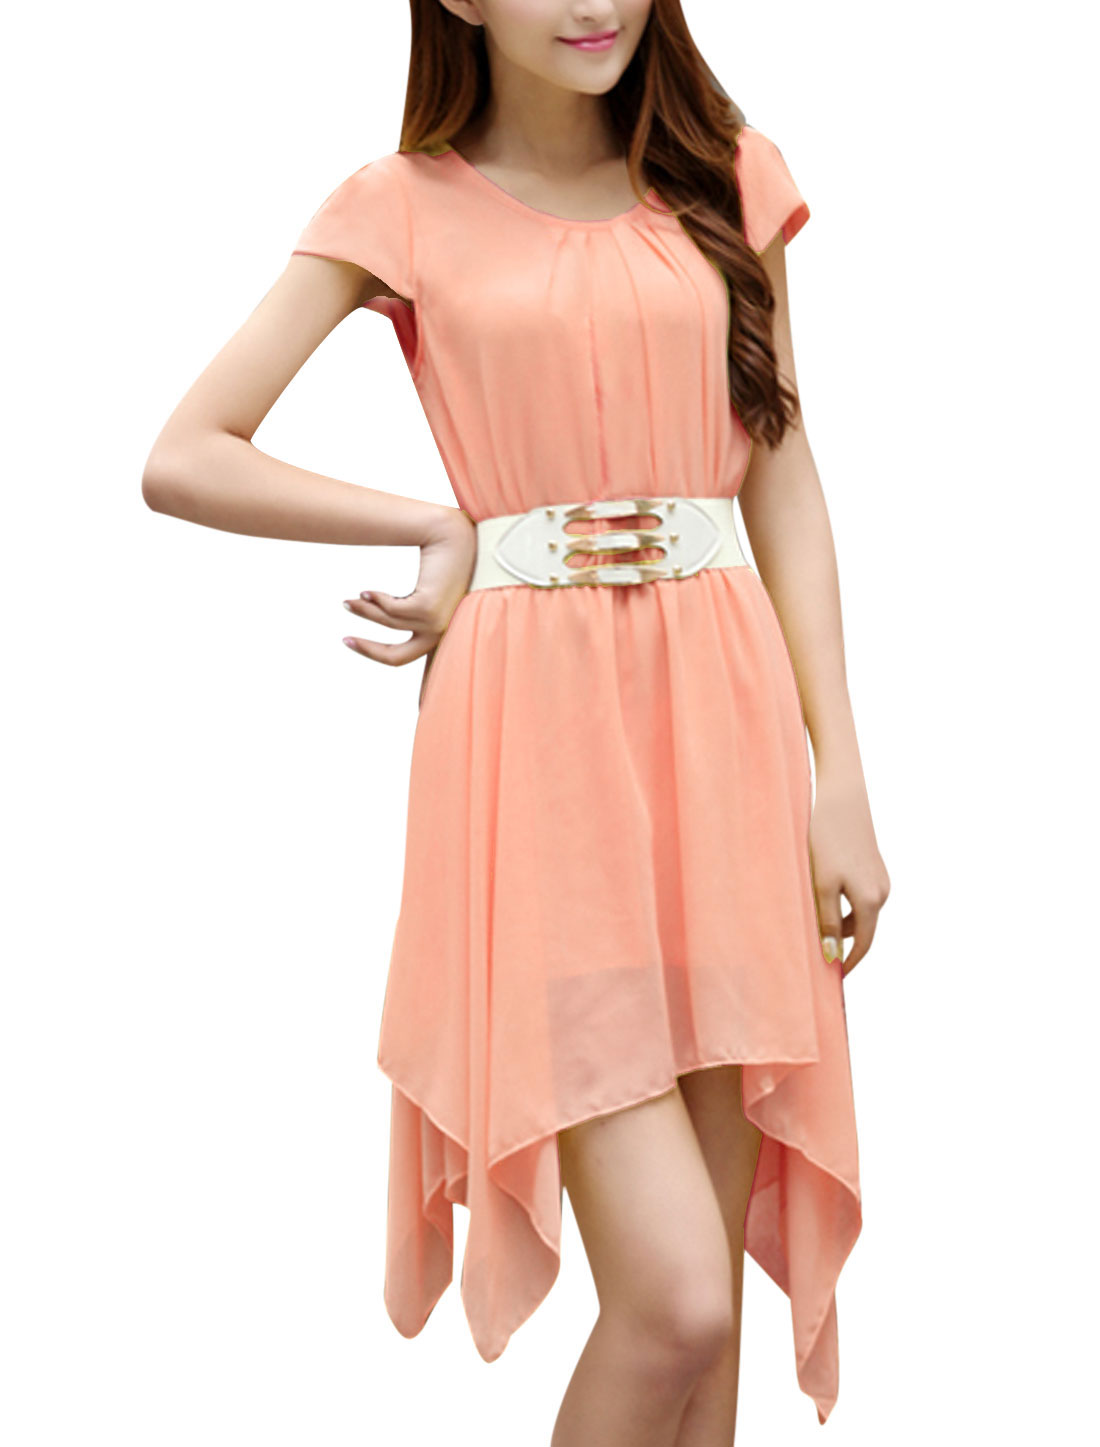 Lady Elastic Waist Low High Hem Lining Blouson Dress w Waist Belt Light Pink XS